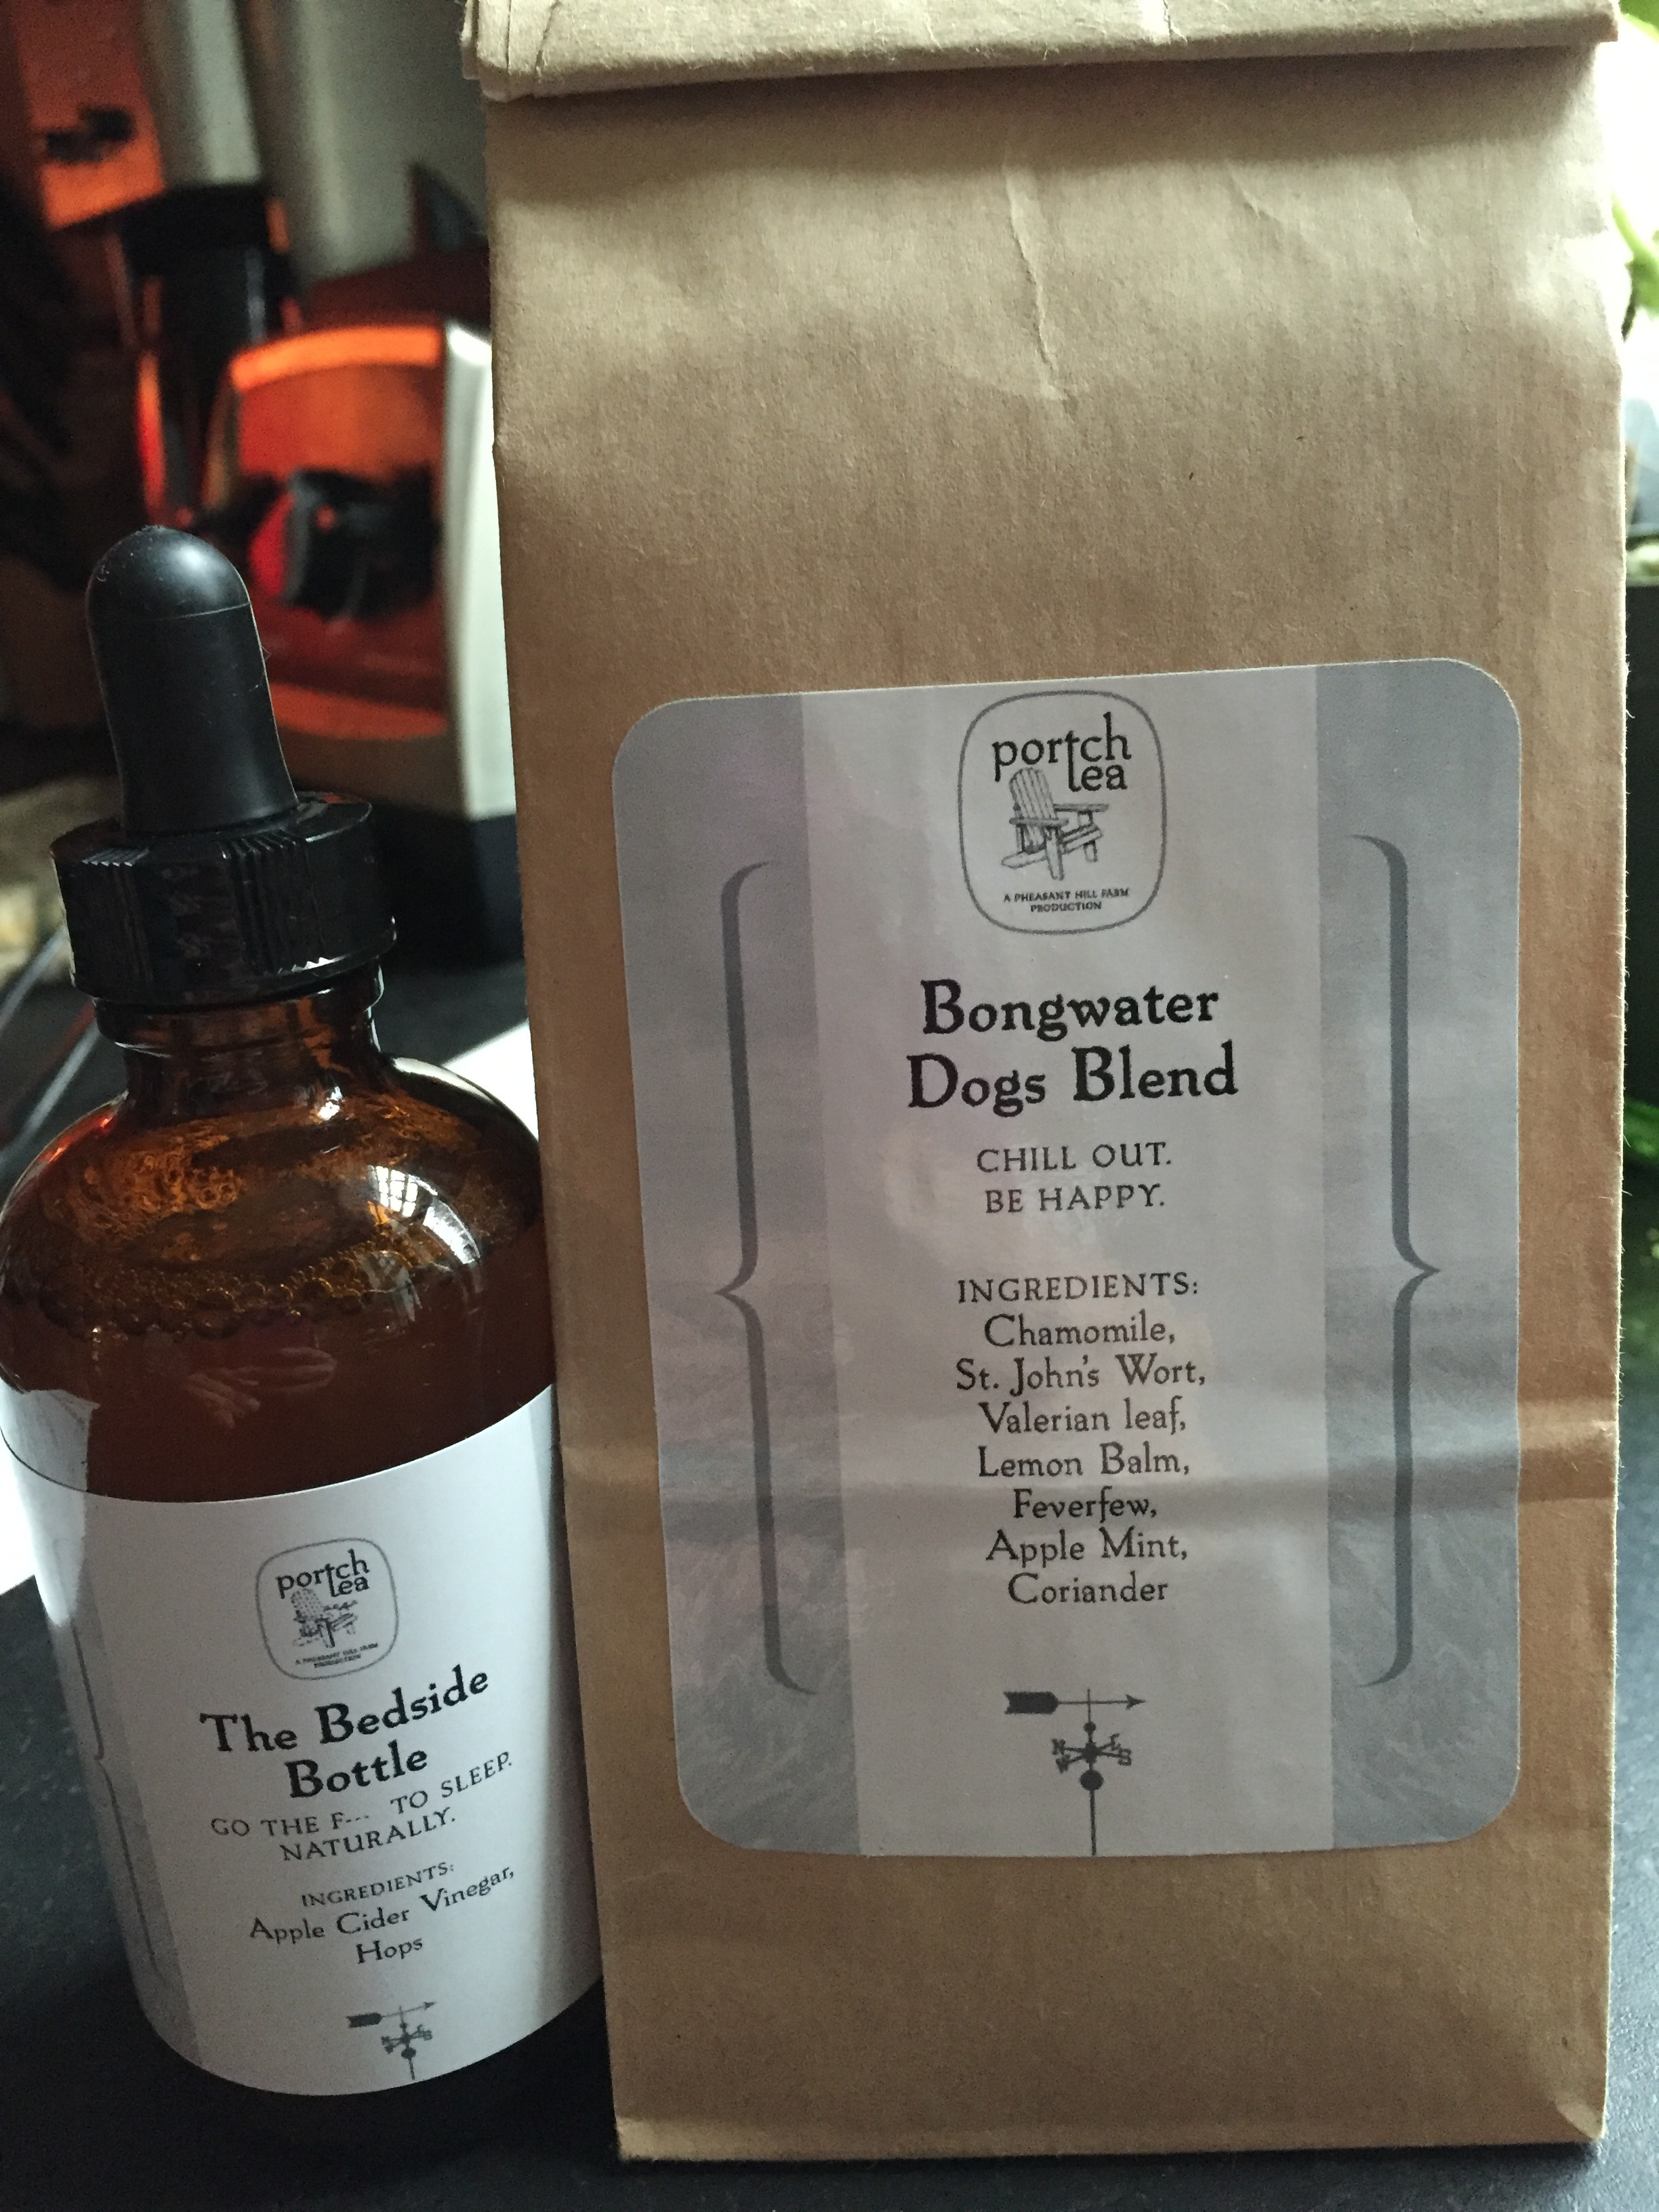 The Bedside Bottle tincture and Bongwater Dogs Blend, from porTchtea.